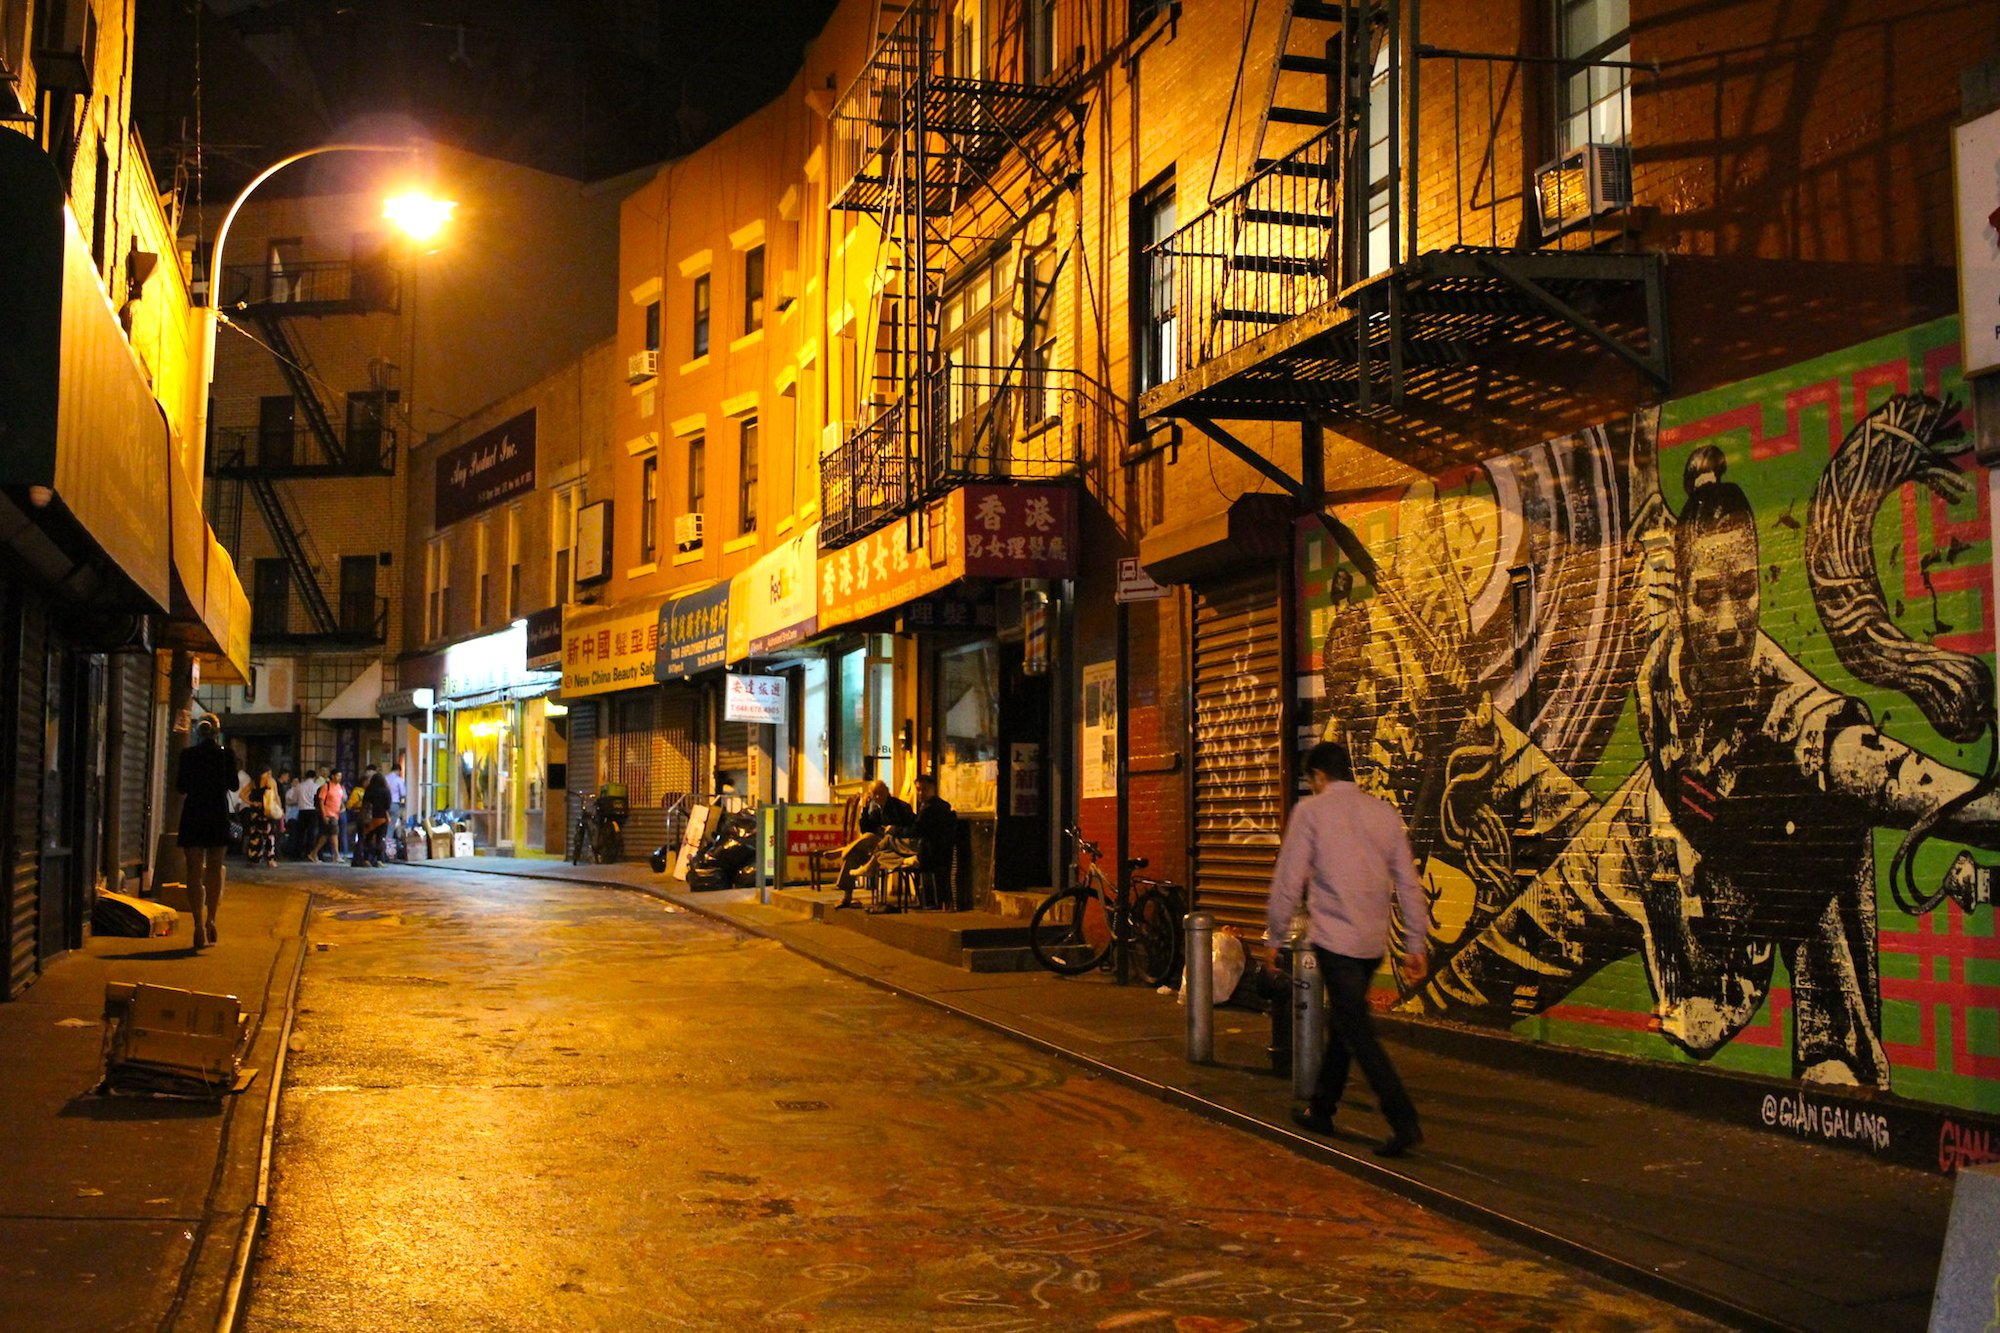 20 Underground And Secret Nyc Attractions You Need To Check Out 6sqft